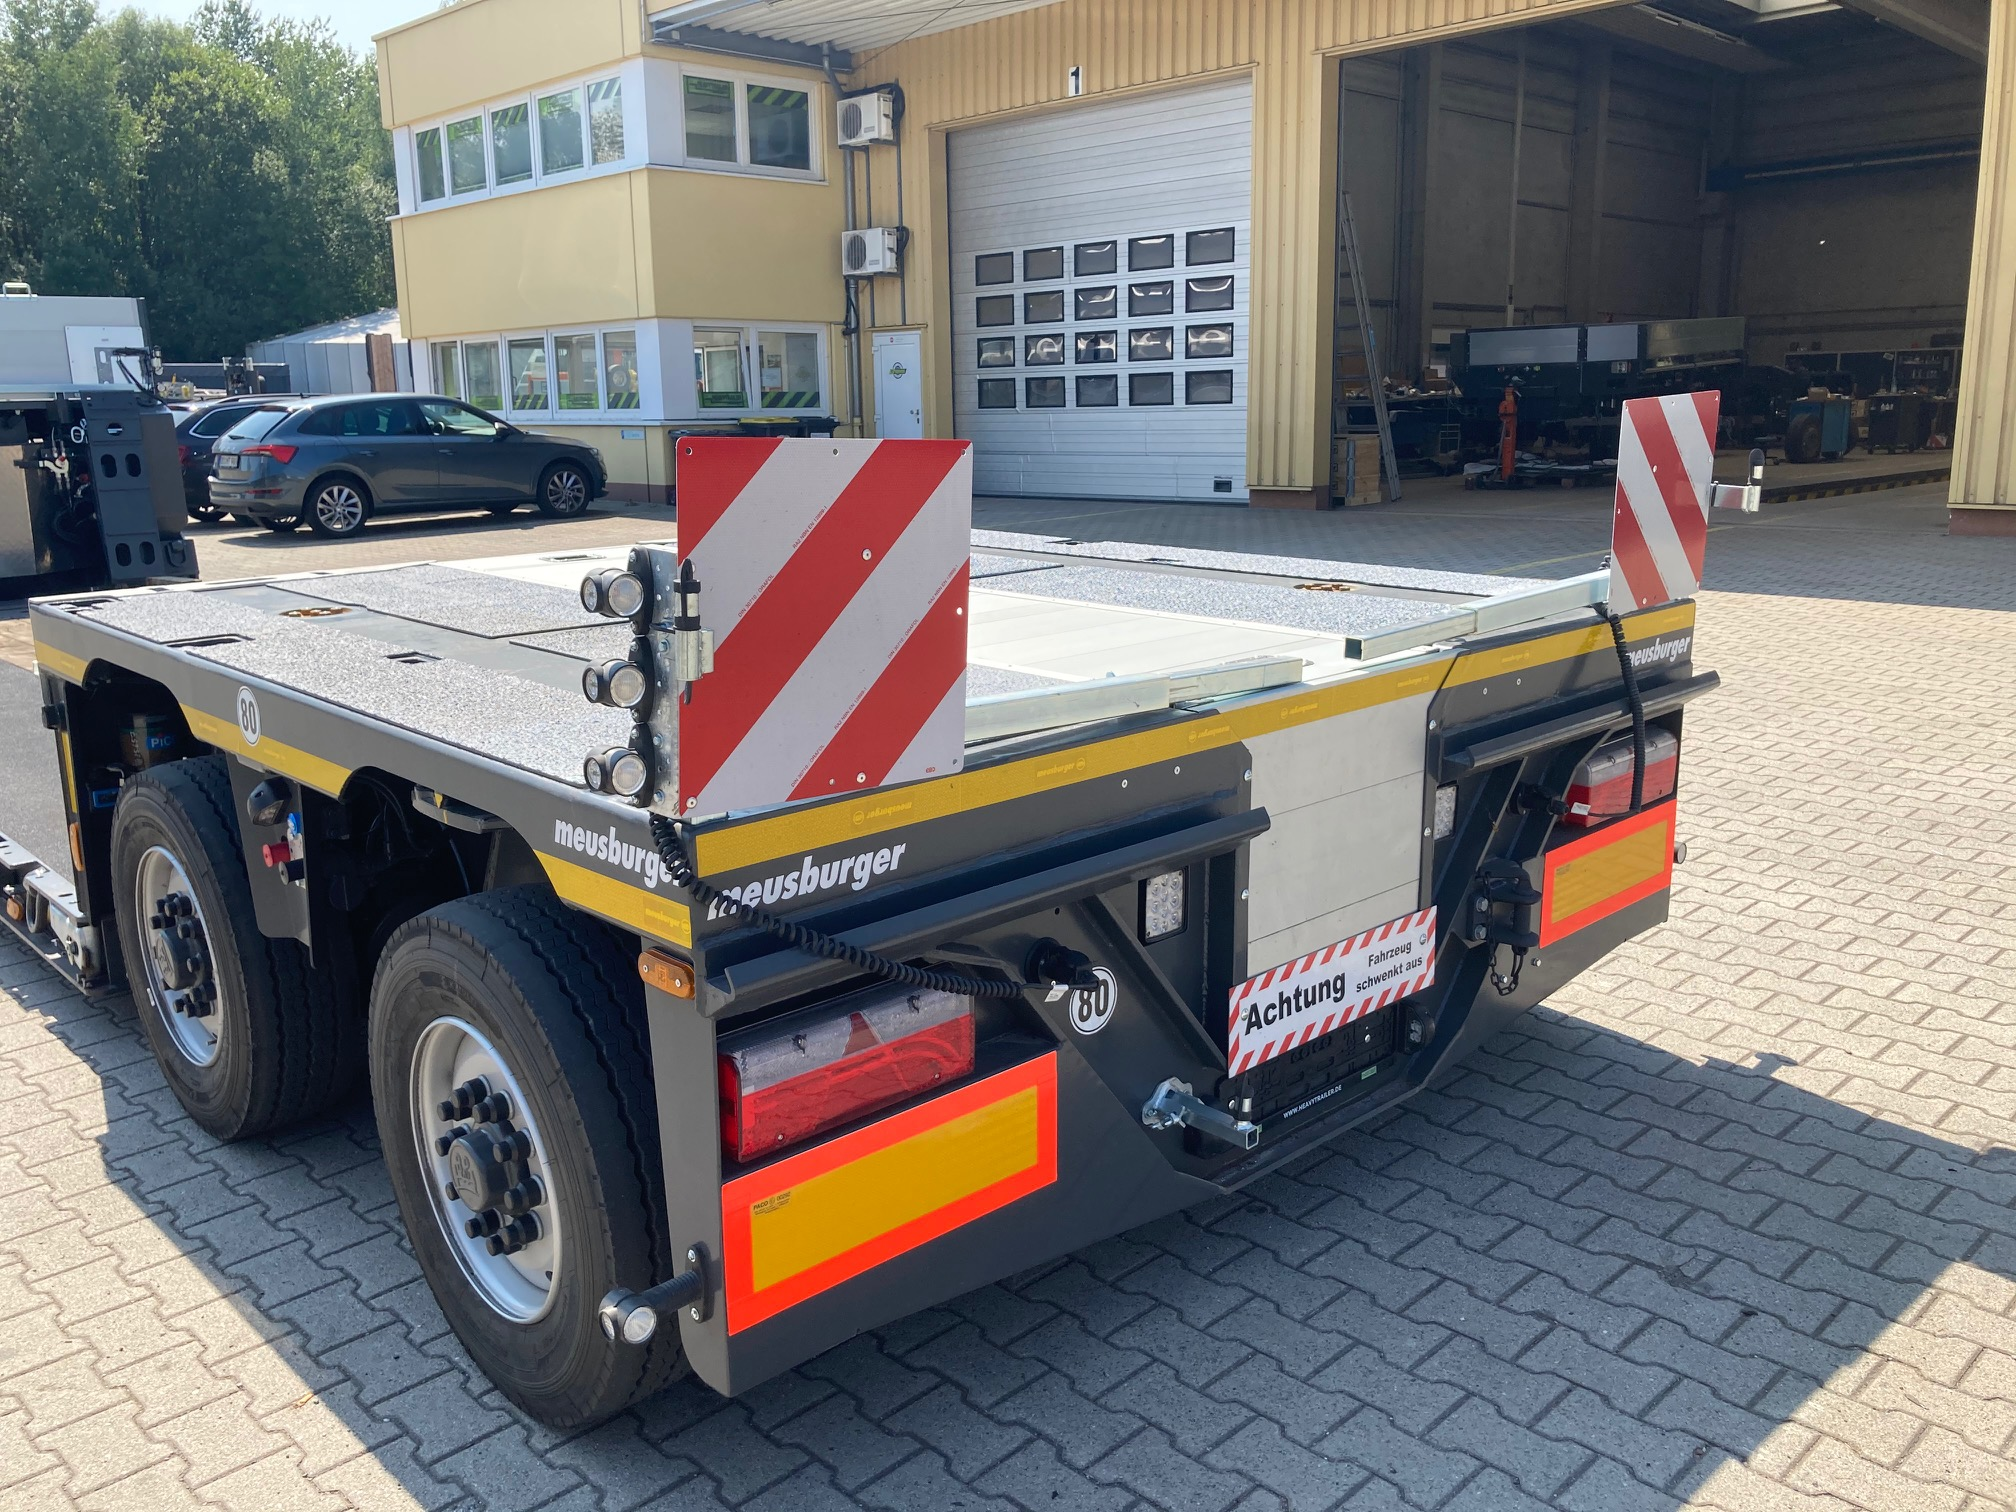 Meusburger 2-axle-low-deck-trailer with pendle axles